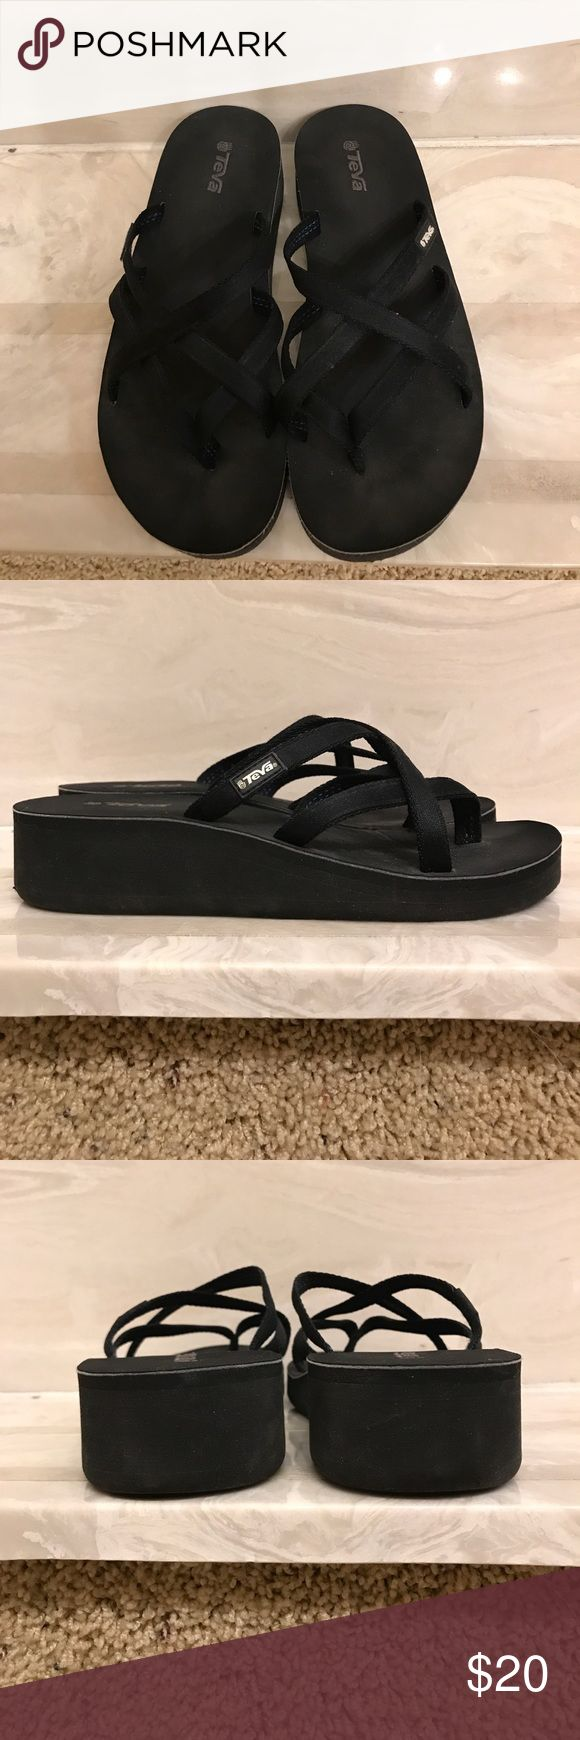 Teva flip flops Super cute wedge heal Teva flip flops. Excellent condition. Only worn a couple of times. Teva Shoes